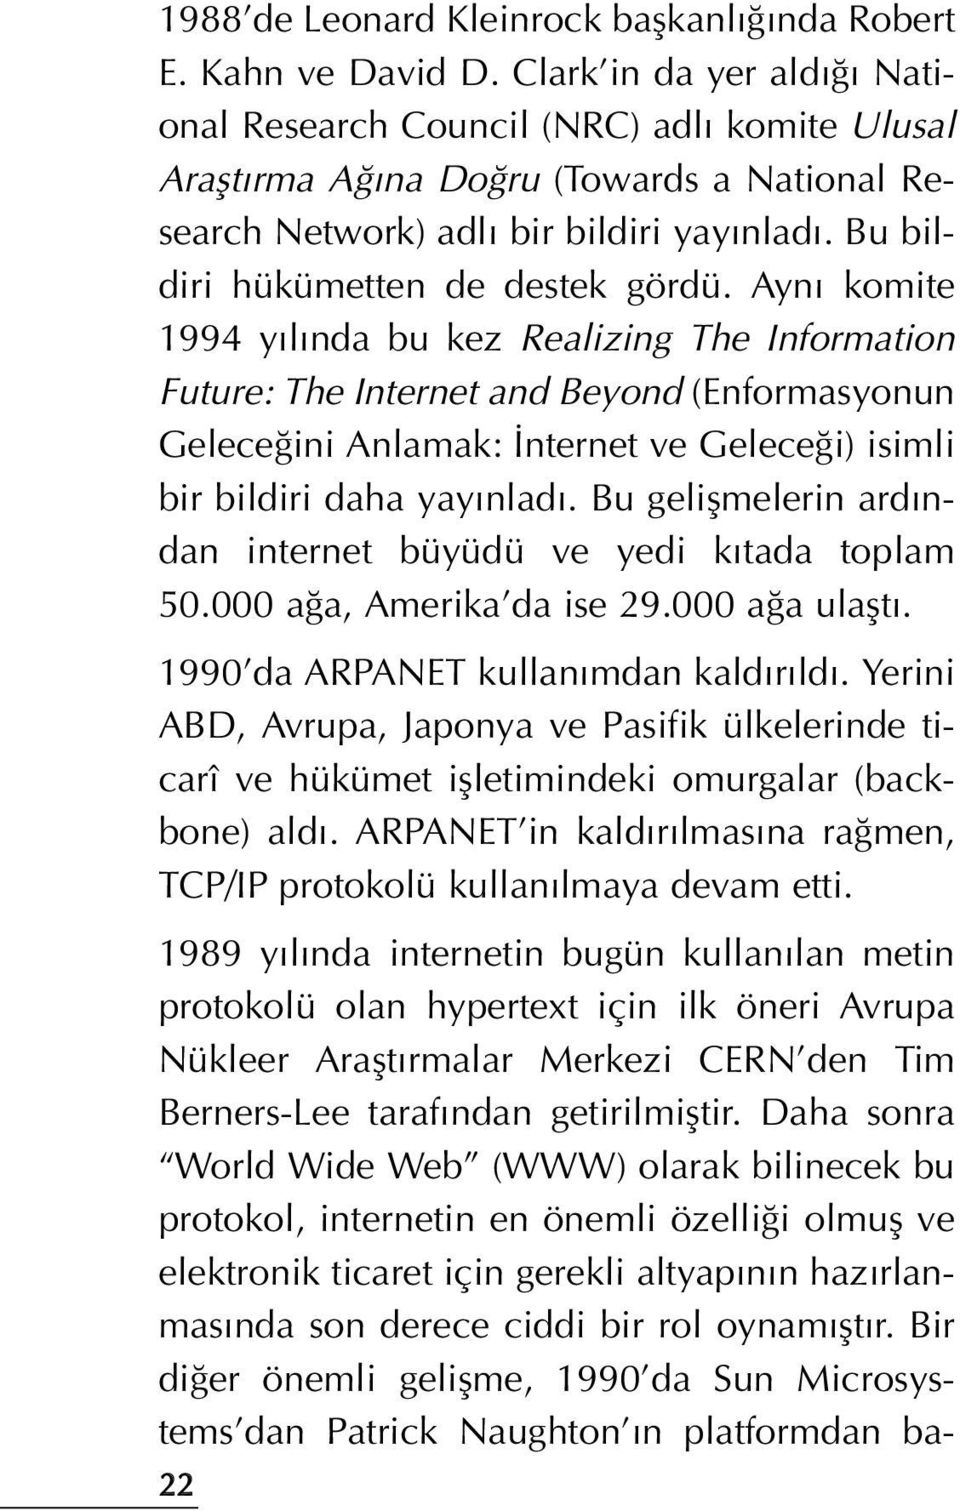 Ayn komite 1994 y l nda bu kez Realizing The Information Future: The Internet and Beyond (Enformasyonun Gelece ini Anlamak: nternet ve Gelece i) isimli bir bildiri daha yay nlad.